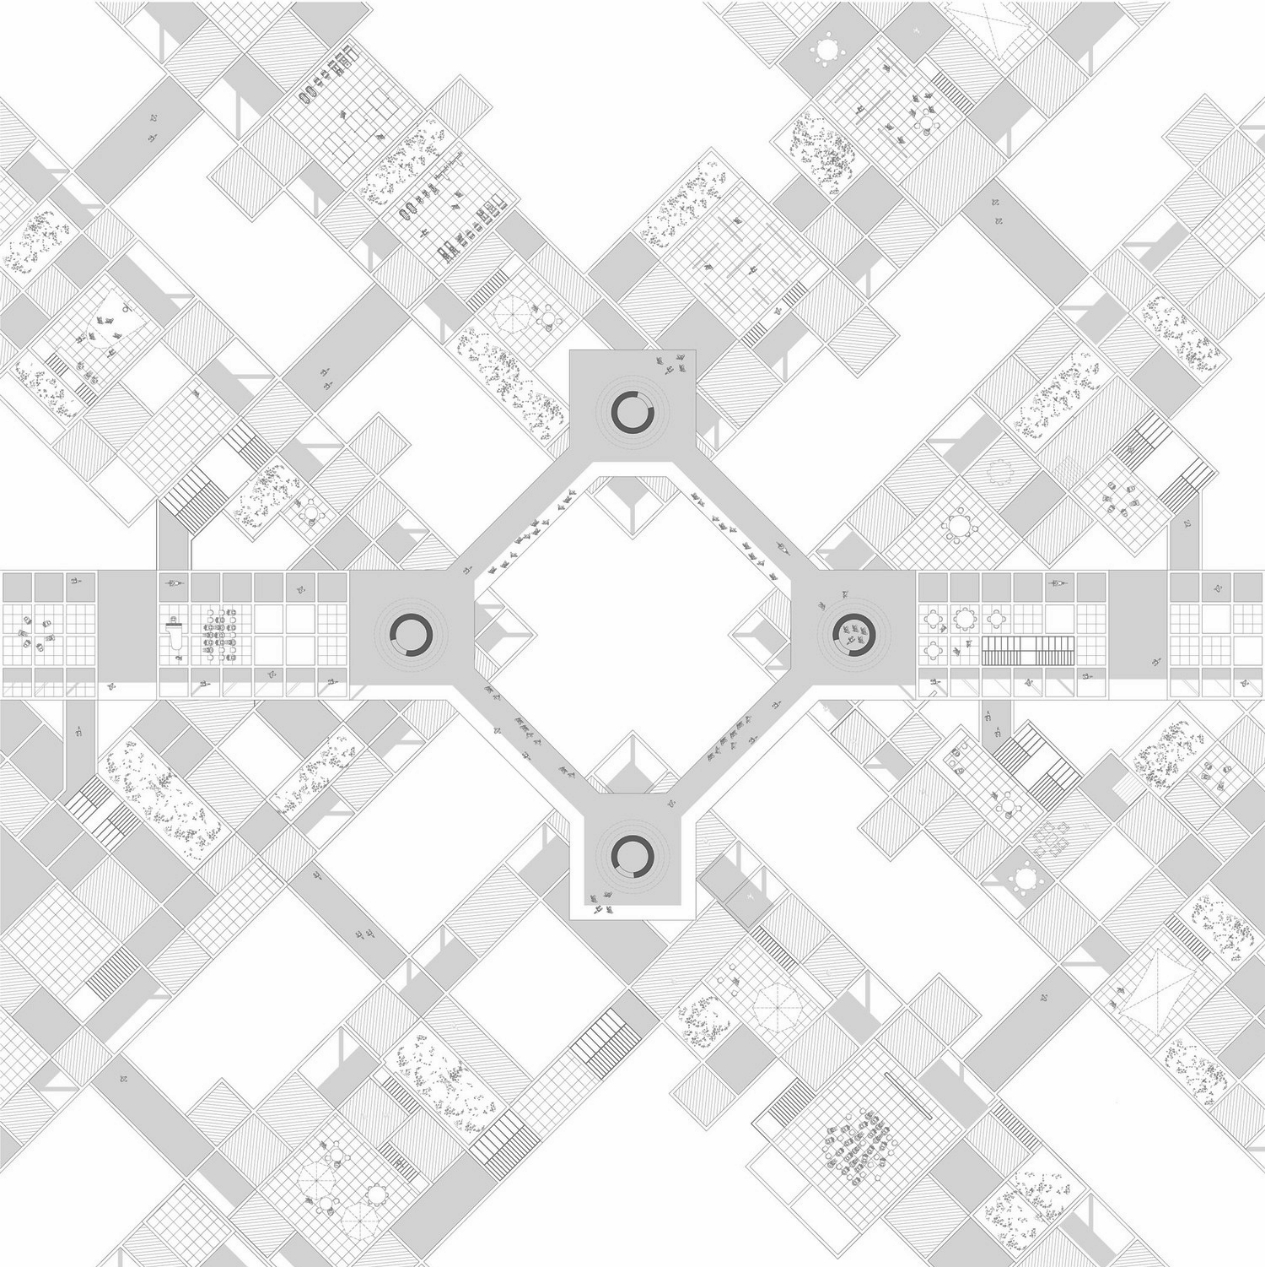 .Bridge Plan.   The new network is composed by the movementpatterns above the city level. These elevatedstreets take the form of bridges that act as connectorsbetween different Sectors. They are completelyautonomous from the automotive movement andspan over the pre-existing urban structure.